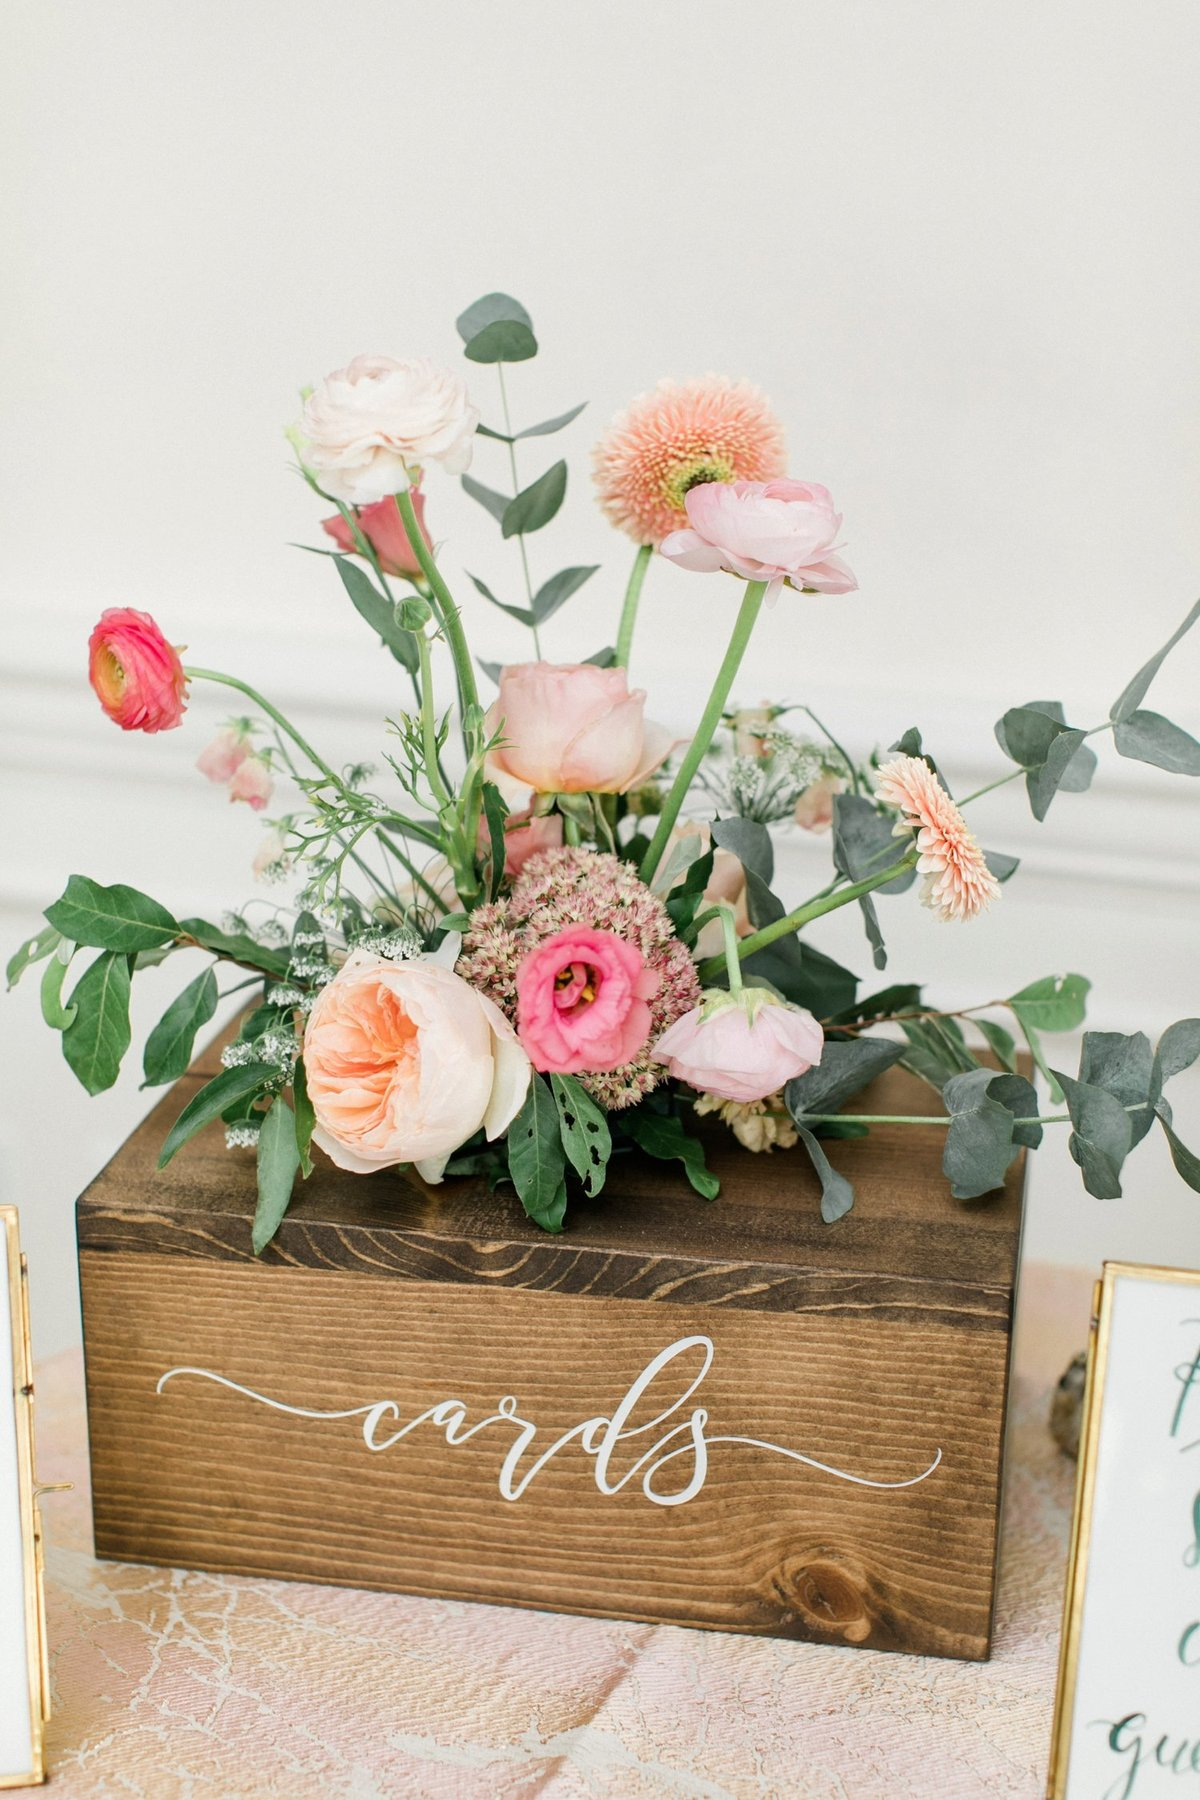 virginia_english garden wedding__2479